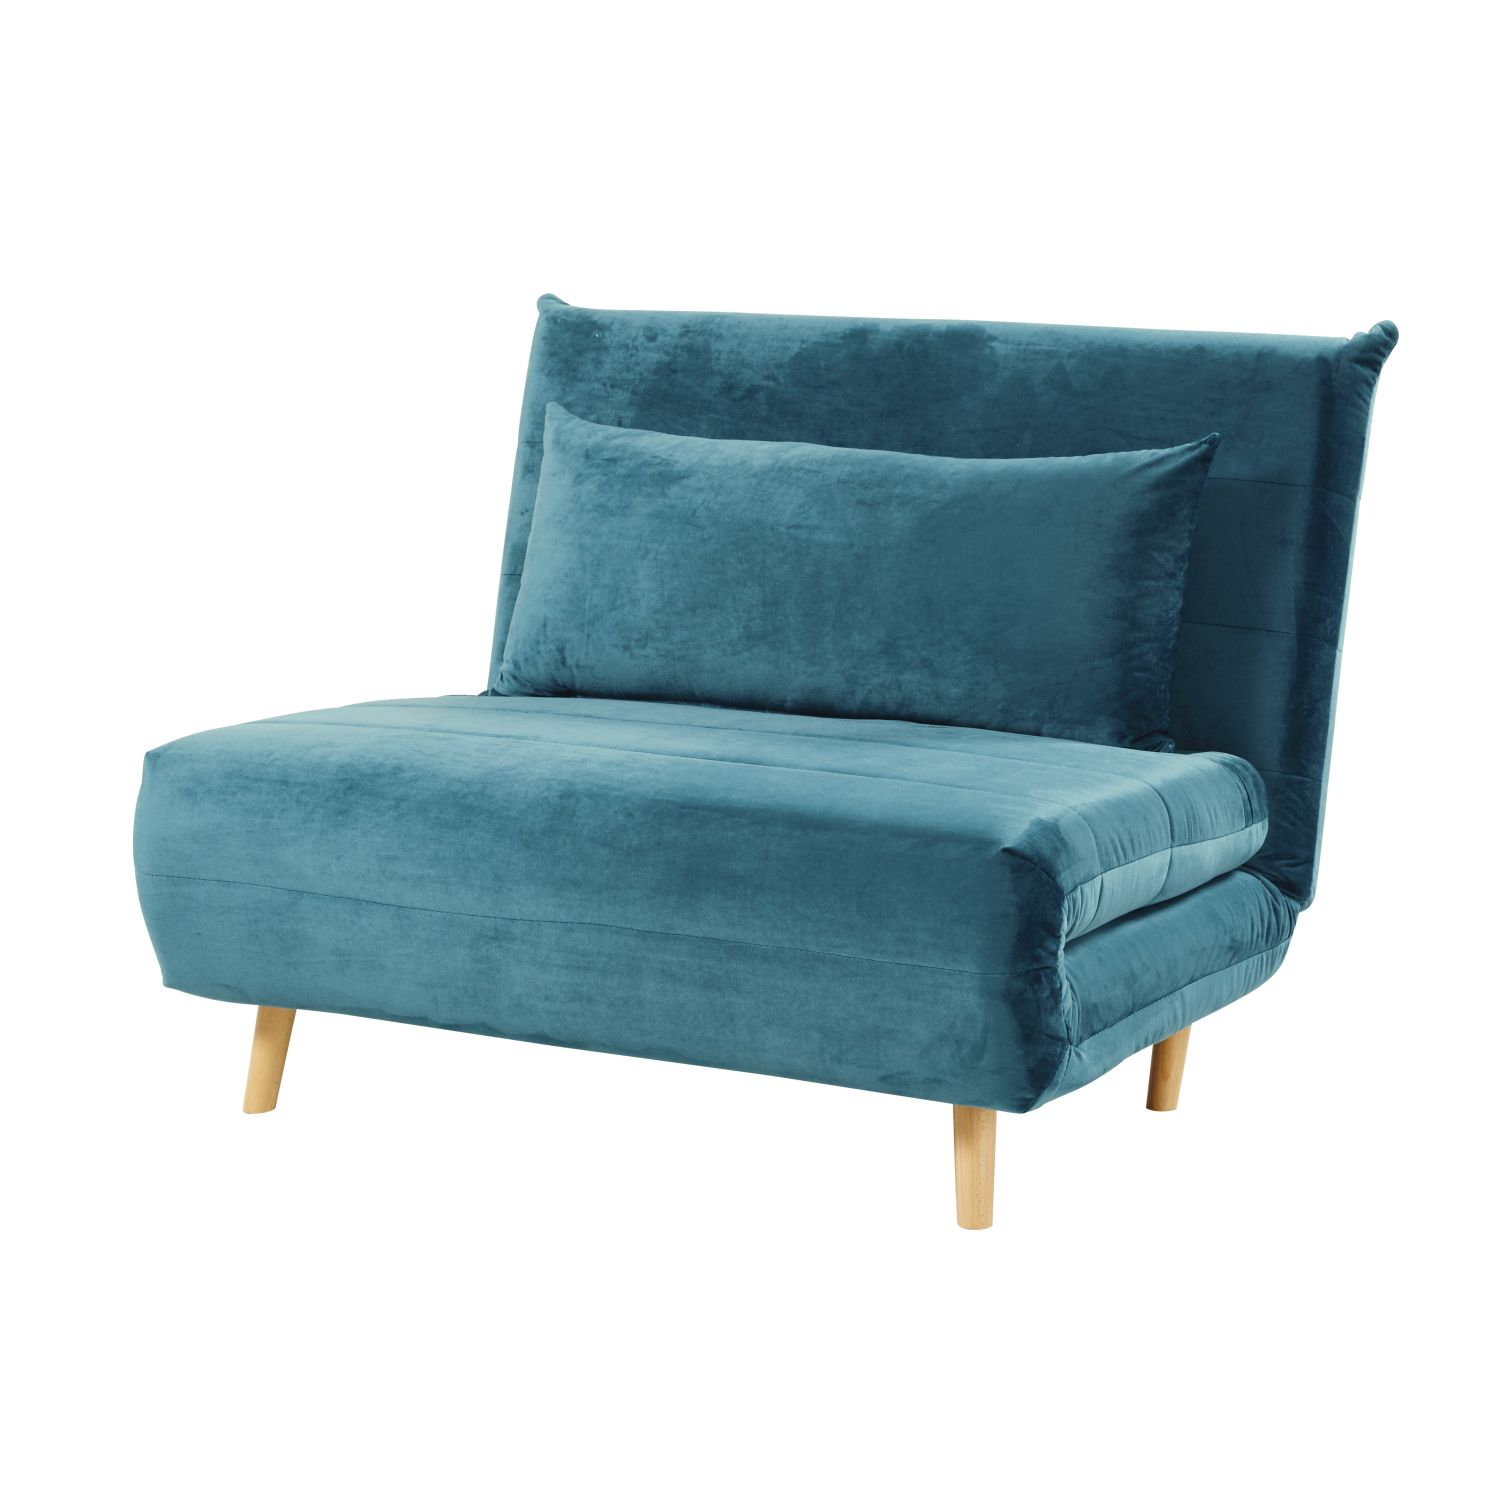 Petrol Blue Single Velvet Day Bed Sofa Nio Maisons Du Monde